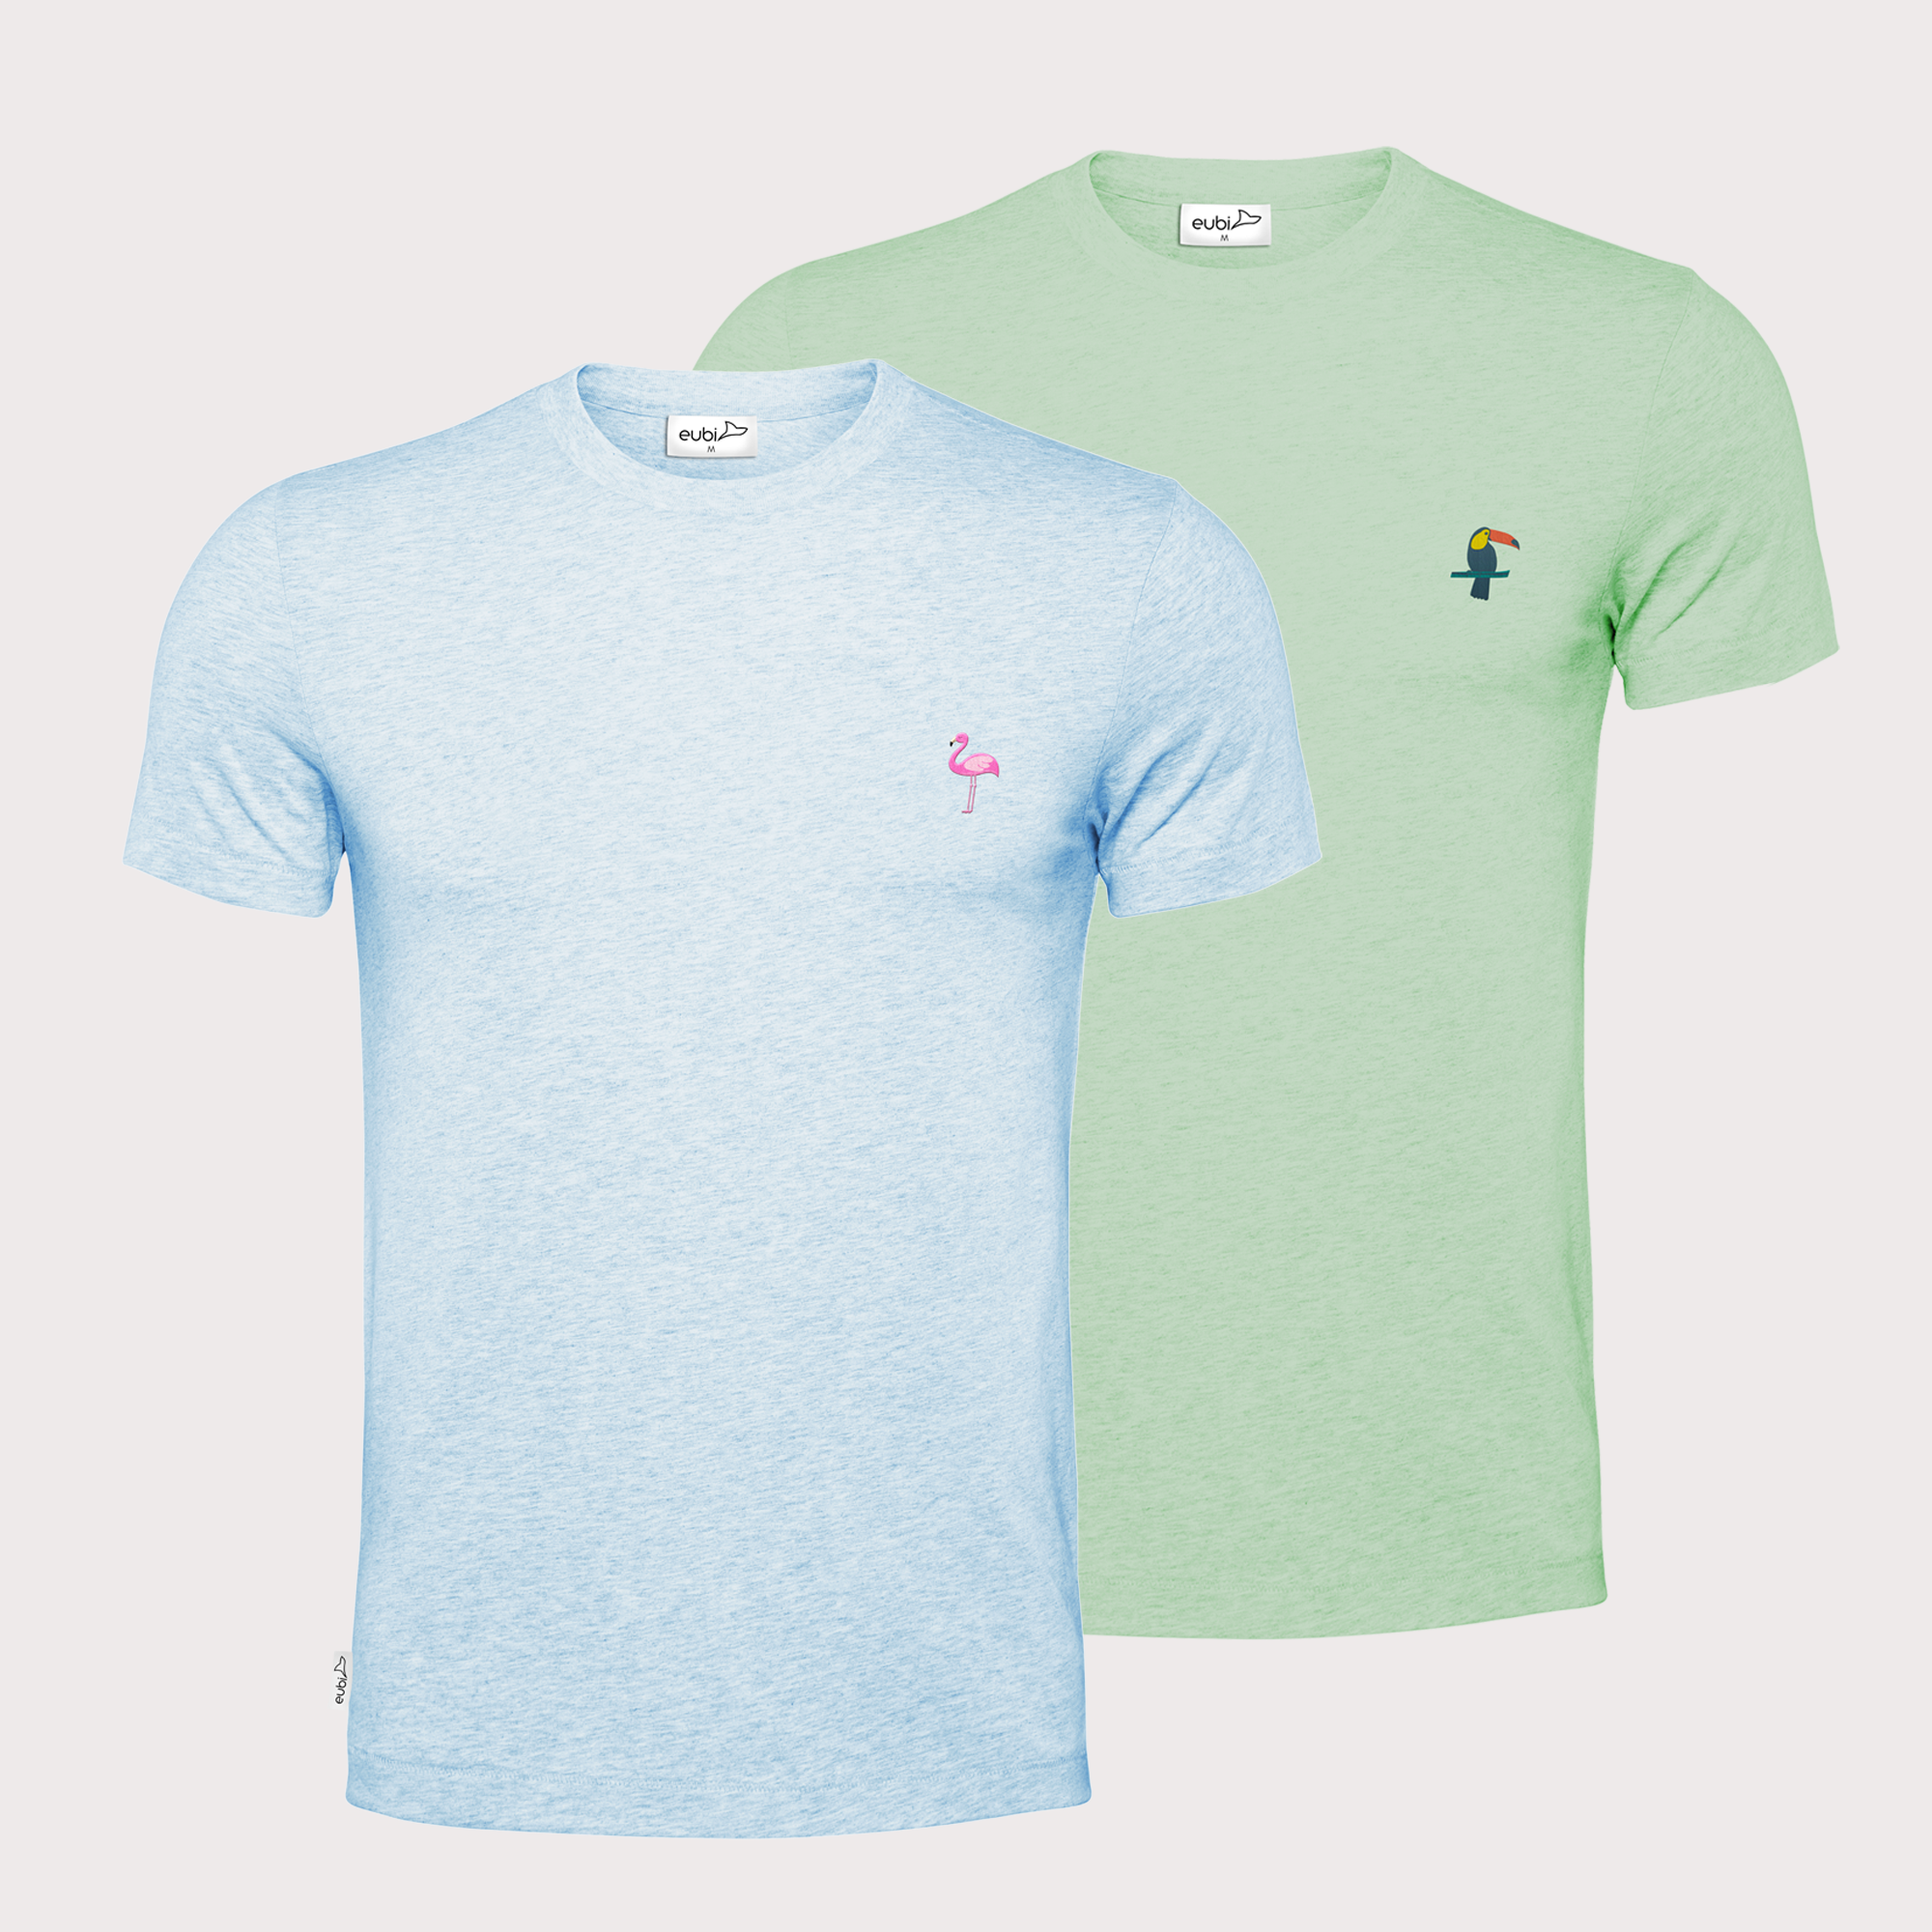 Toucan + Flamingo Signature T-Shirt Bundle